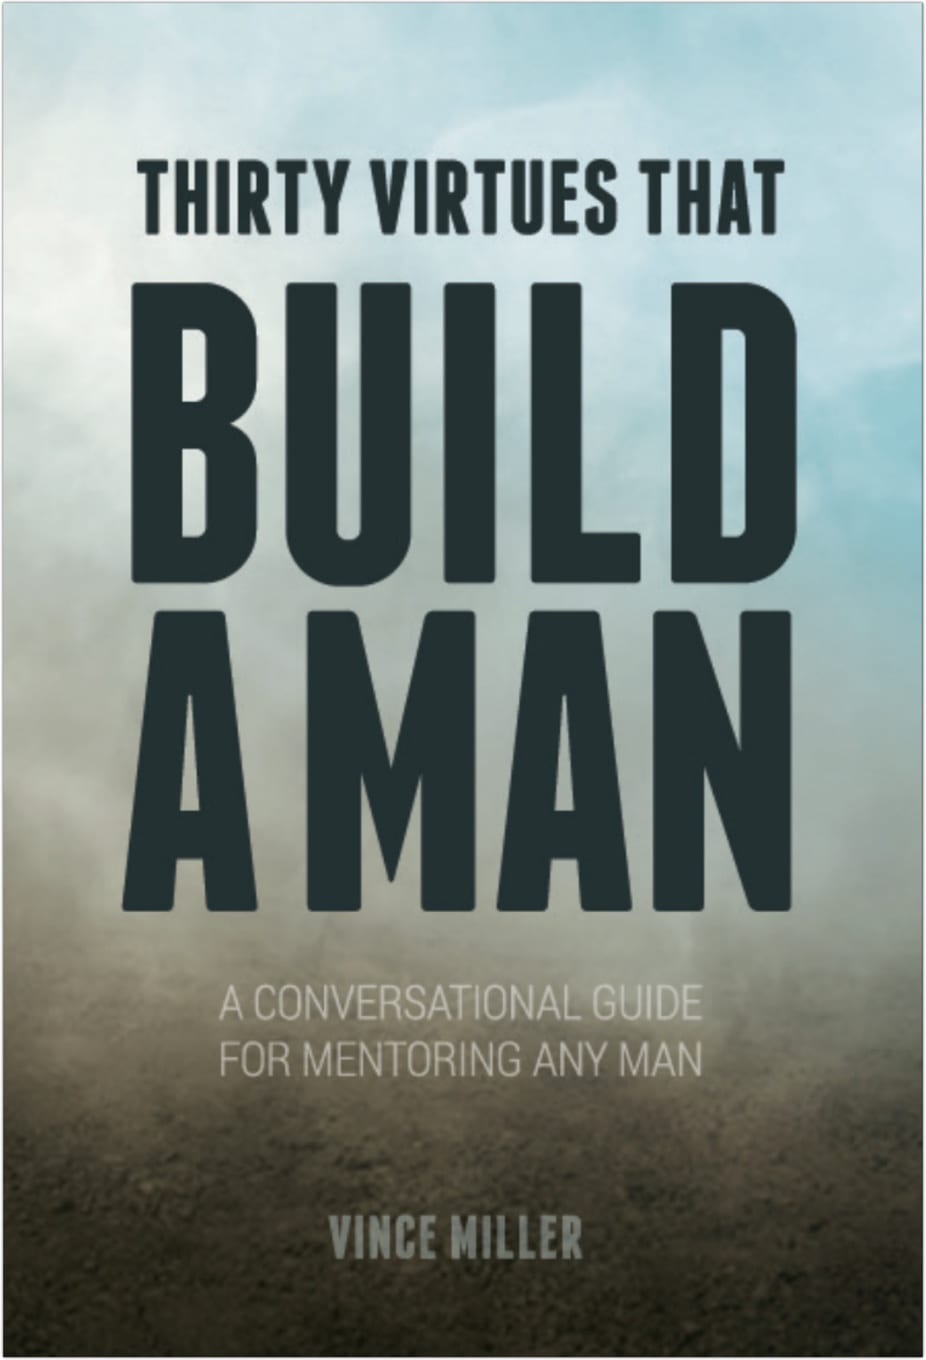 Thirty Virtues That Build a Man A Conversational Guide for Mentoring Any  Man (Equip Press, 2018)